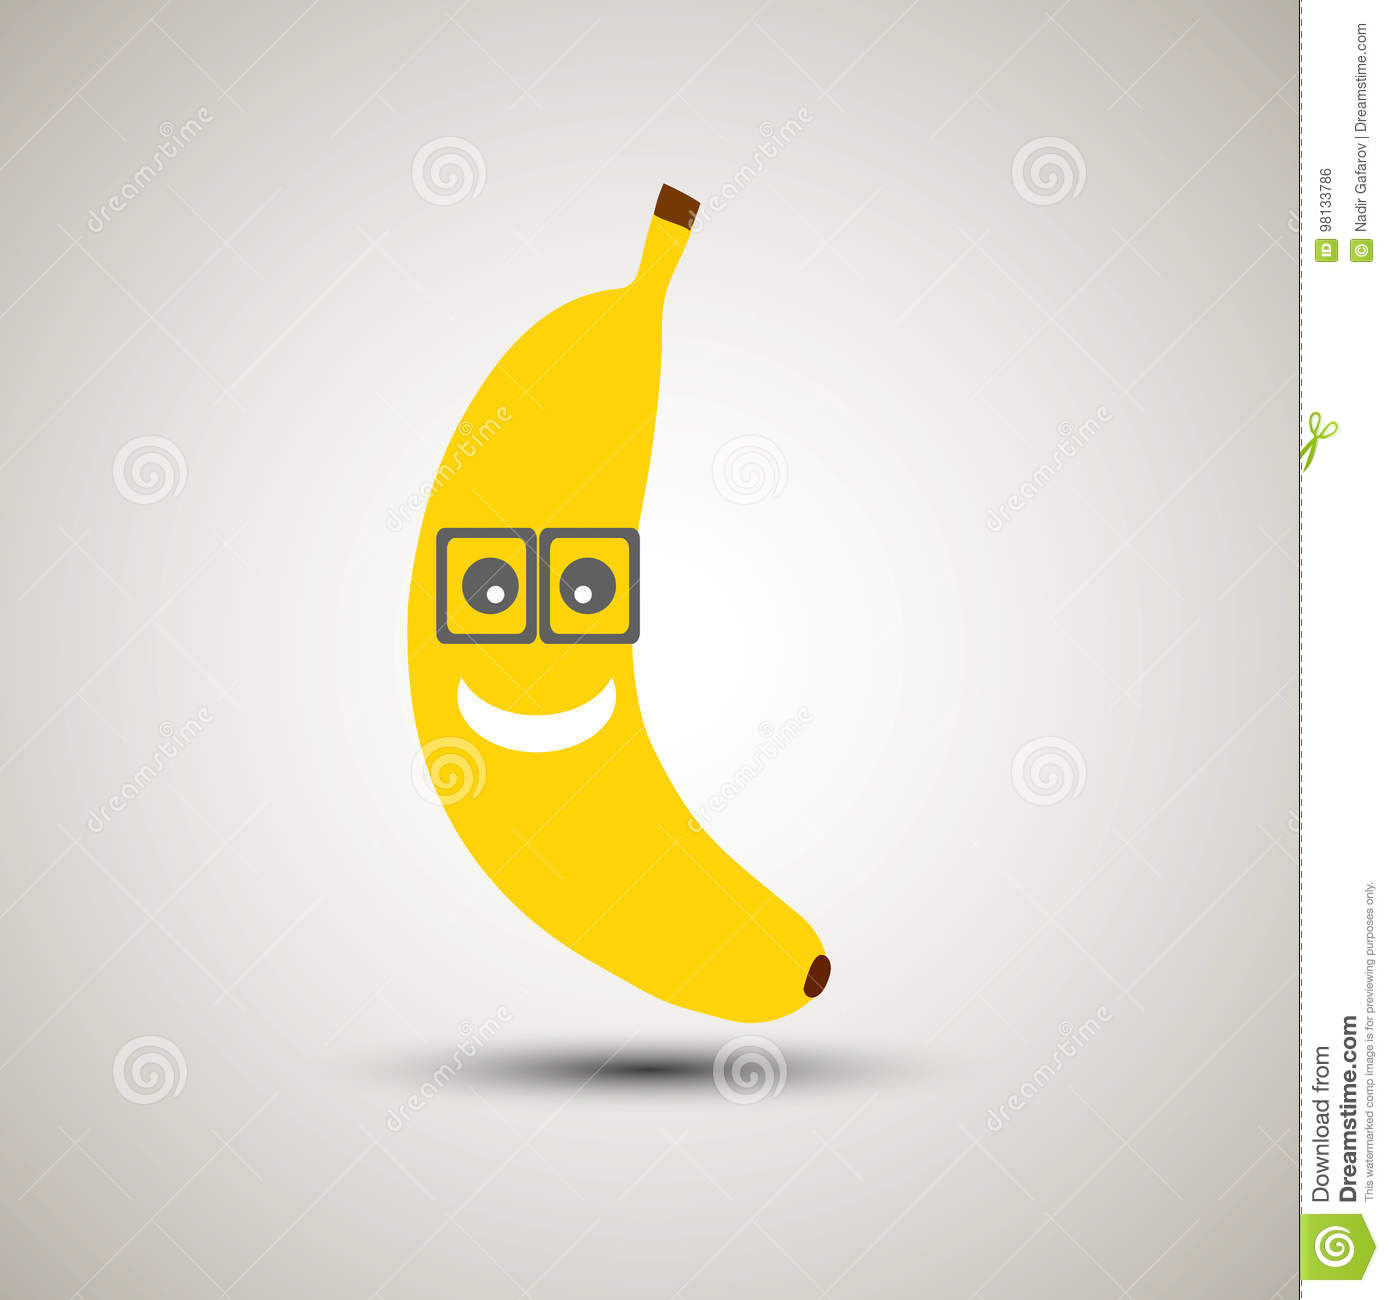 Emoji Jaune De Banane Dans Des Lunettes Emoticone Pour Des Apps Interdiction Jaune Illustration De Vecteur Illustration Du Lunettes Emoticone 98133786